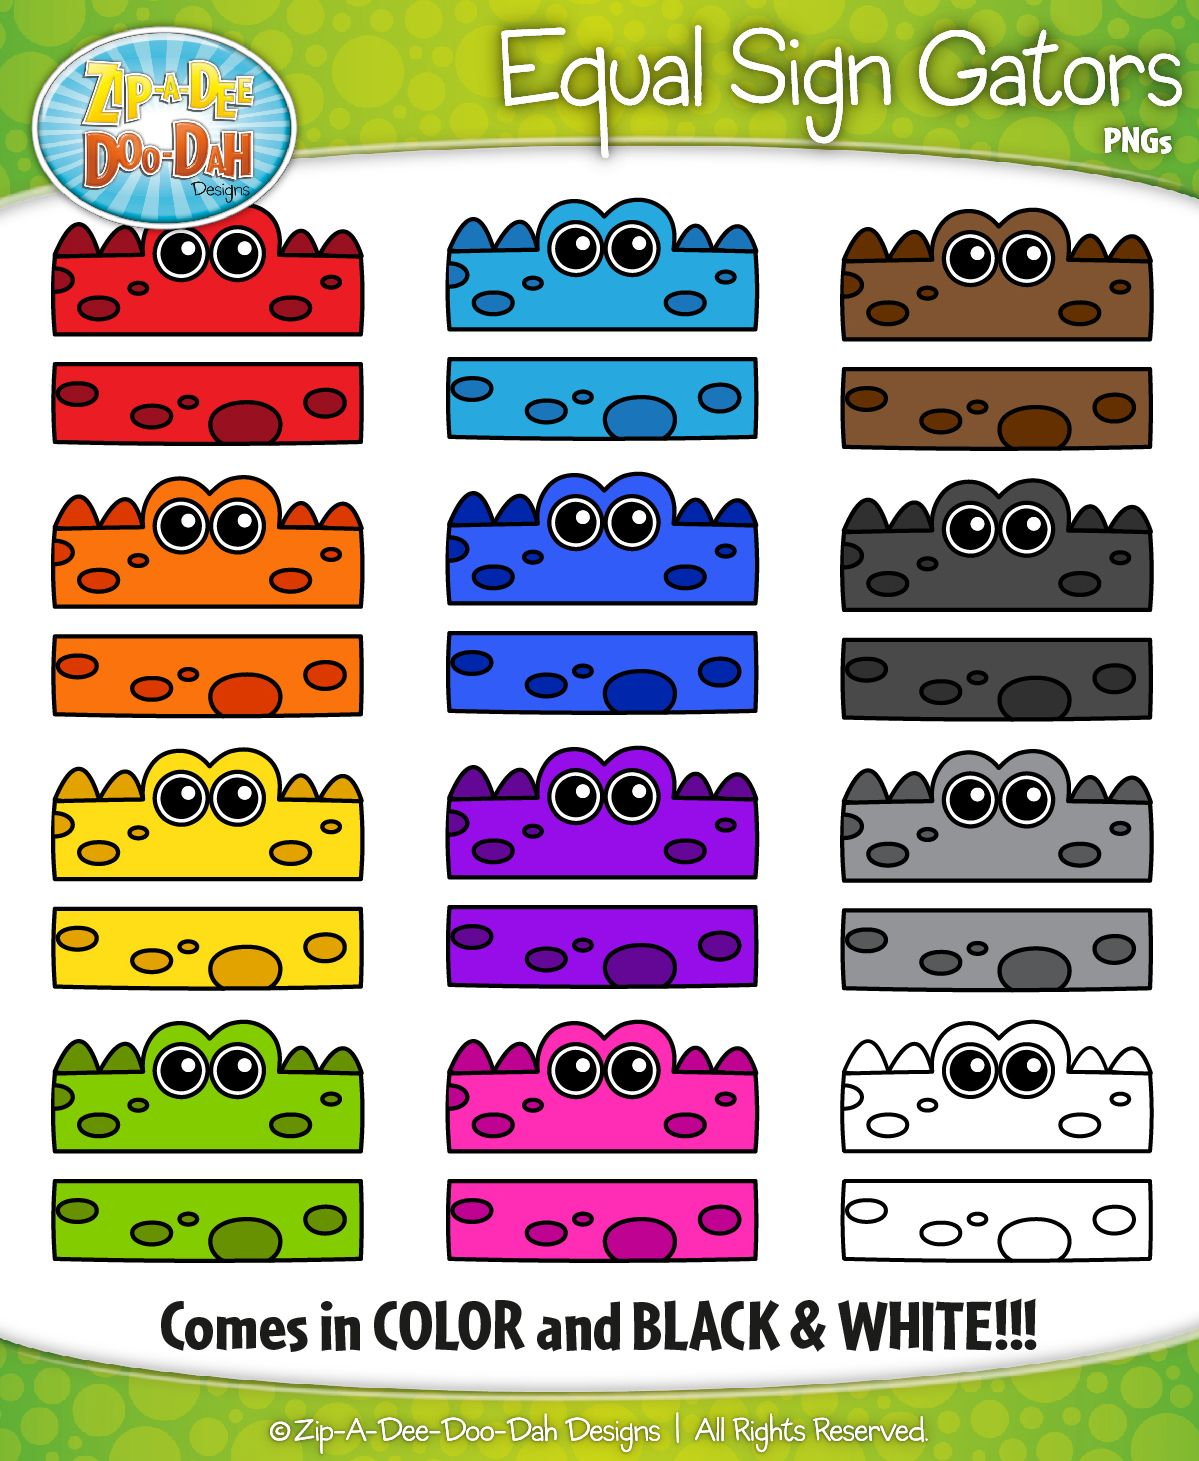 small resolution of rainbow equal sign gator characters clipart includes 12 graphics